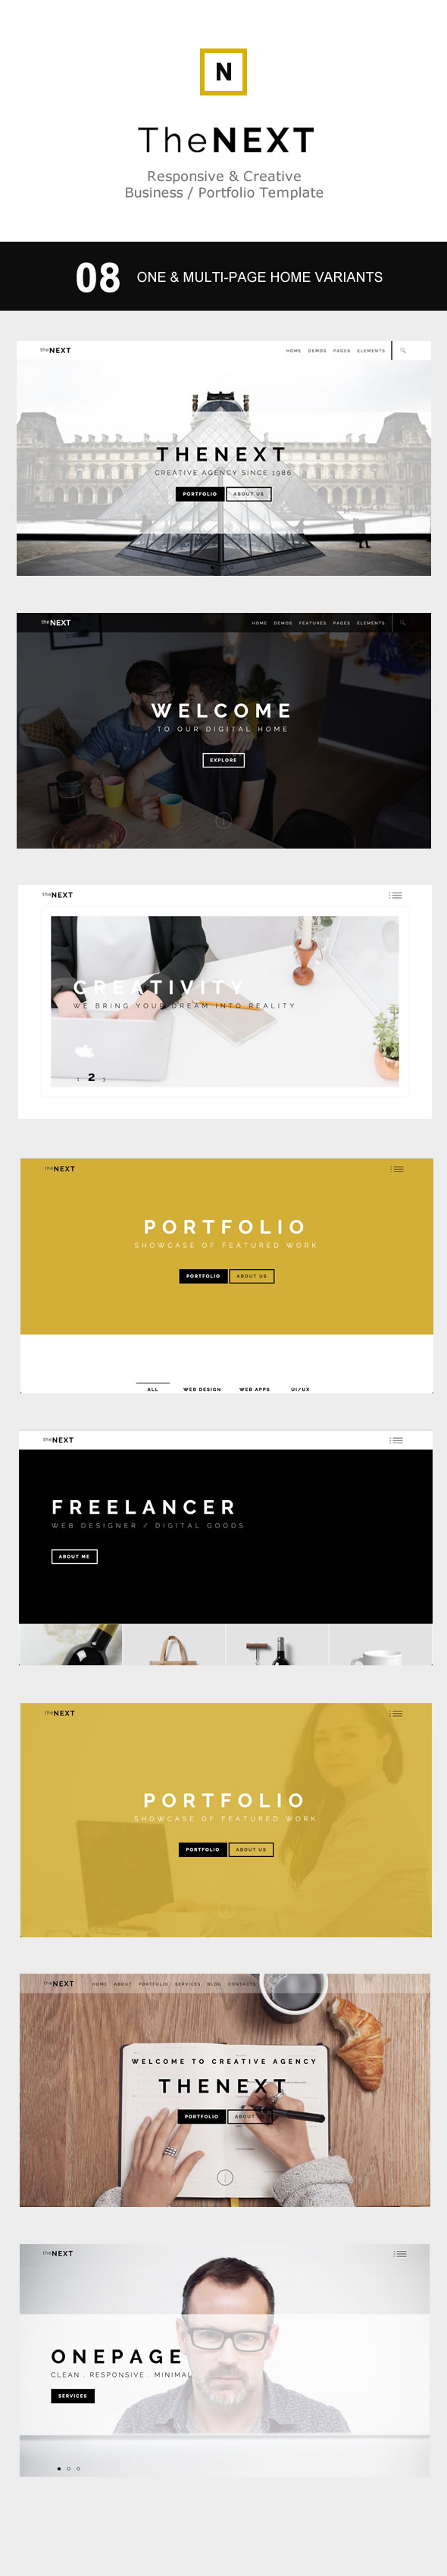 Thenext creative business portfolio template themevoid for Company portfolio template doc